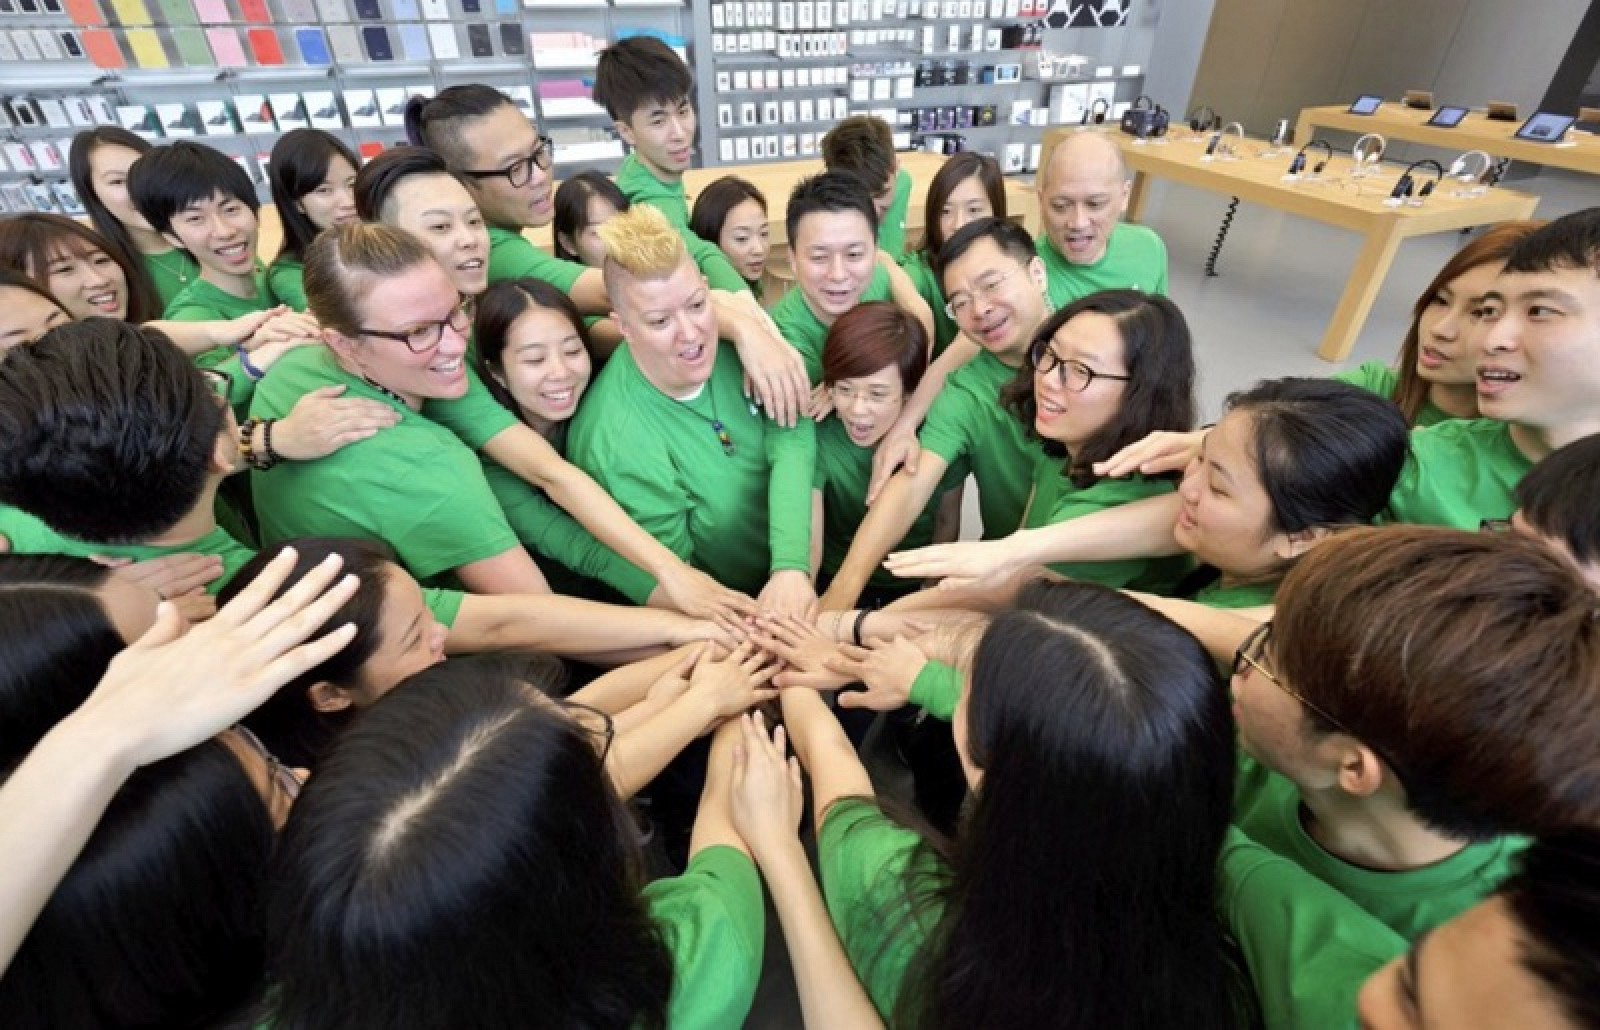 photo image Apple Employees to Celebrate Earth Day With Green Shirts Starting April 20